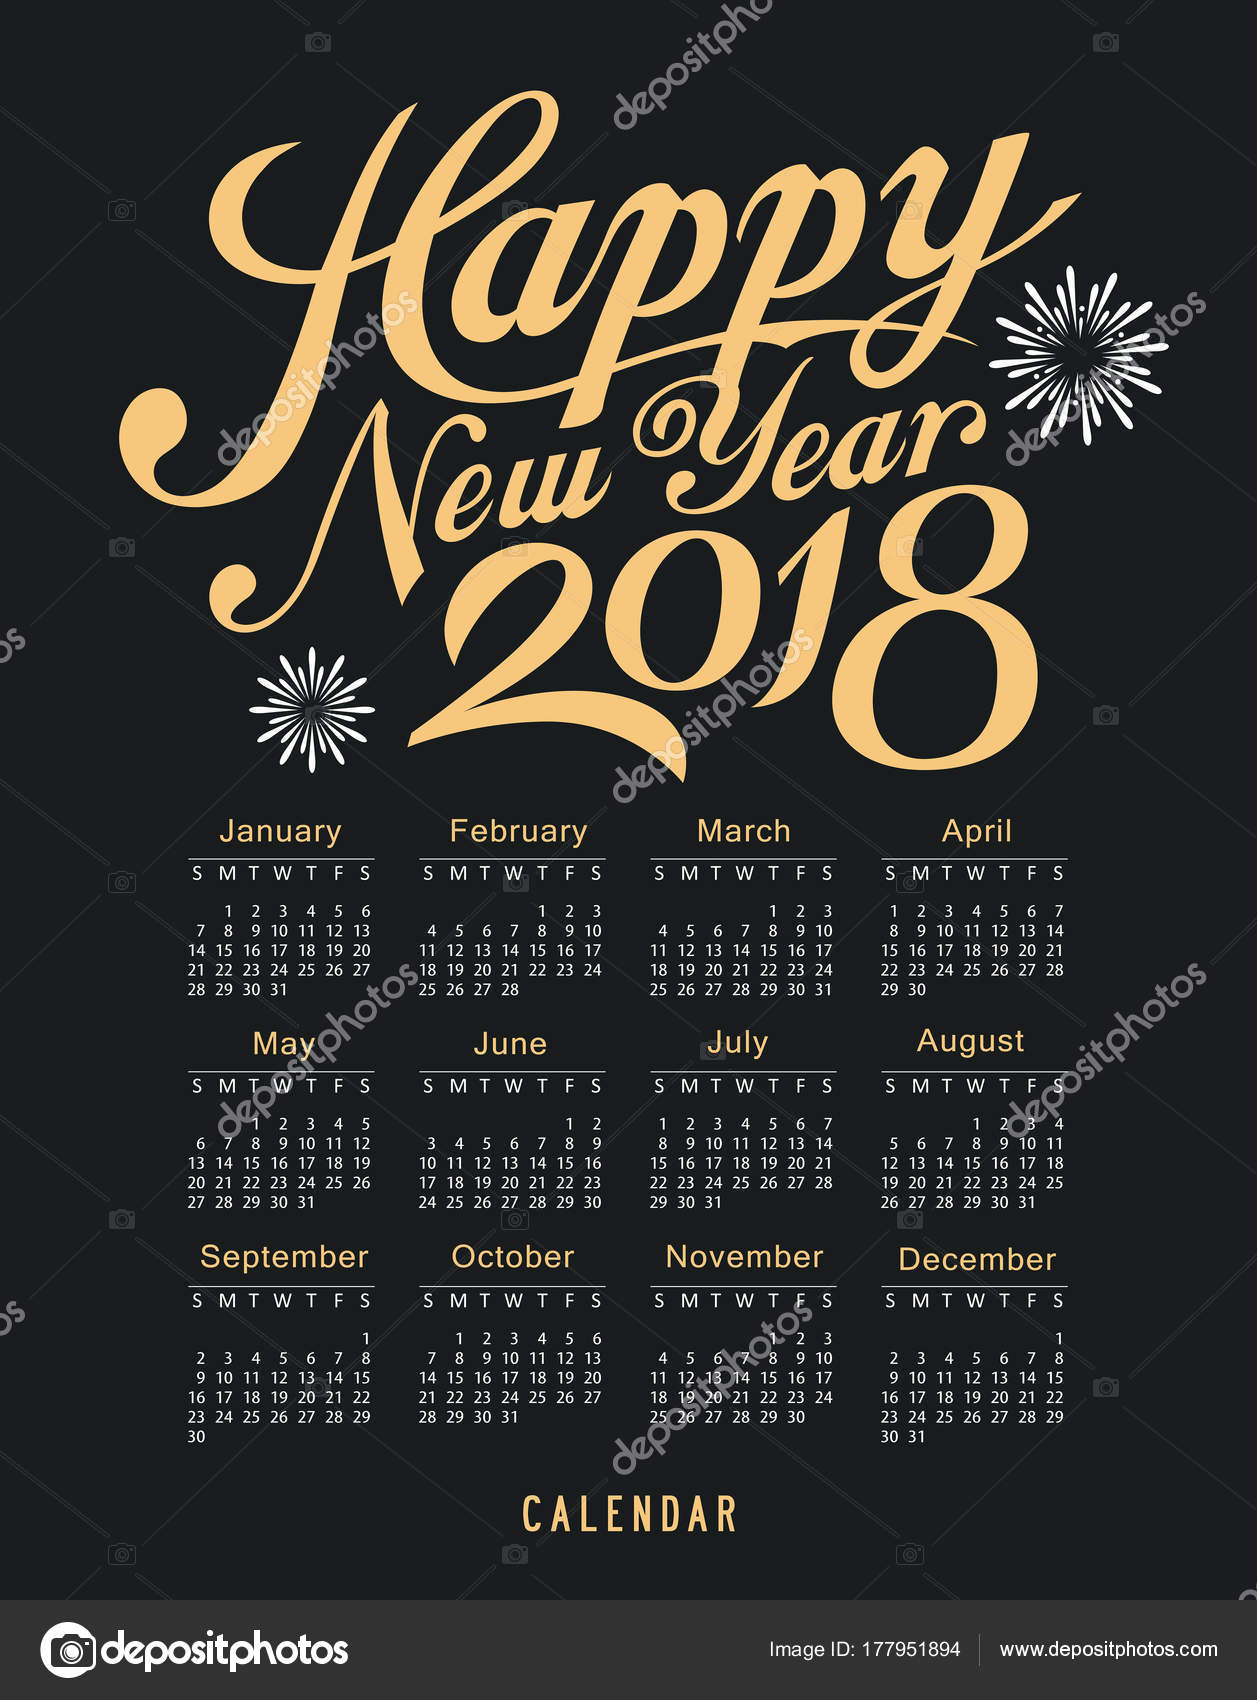 calendar happy new year 2018 message black and gold template design background vector illustration vector by sarunyu_foto